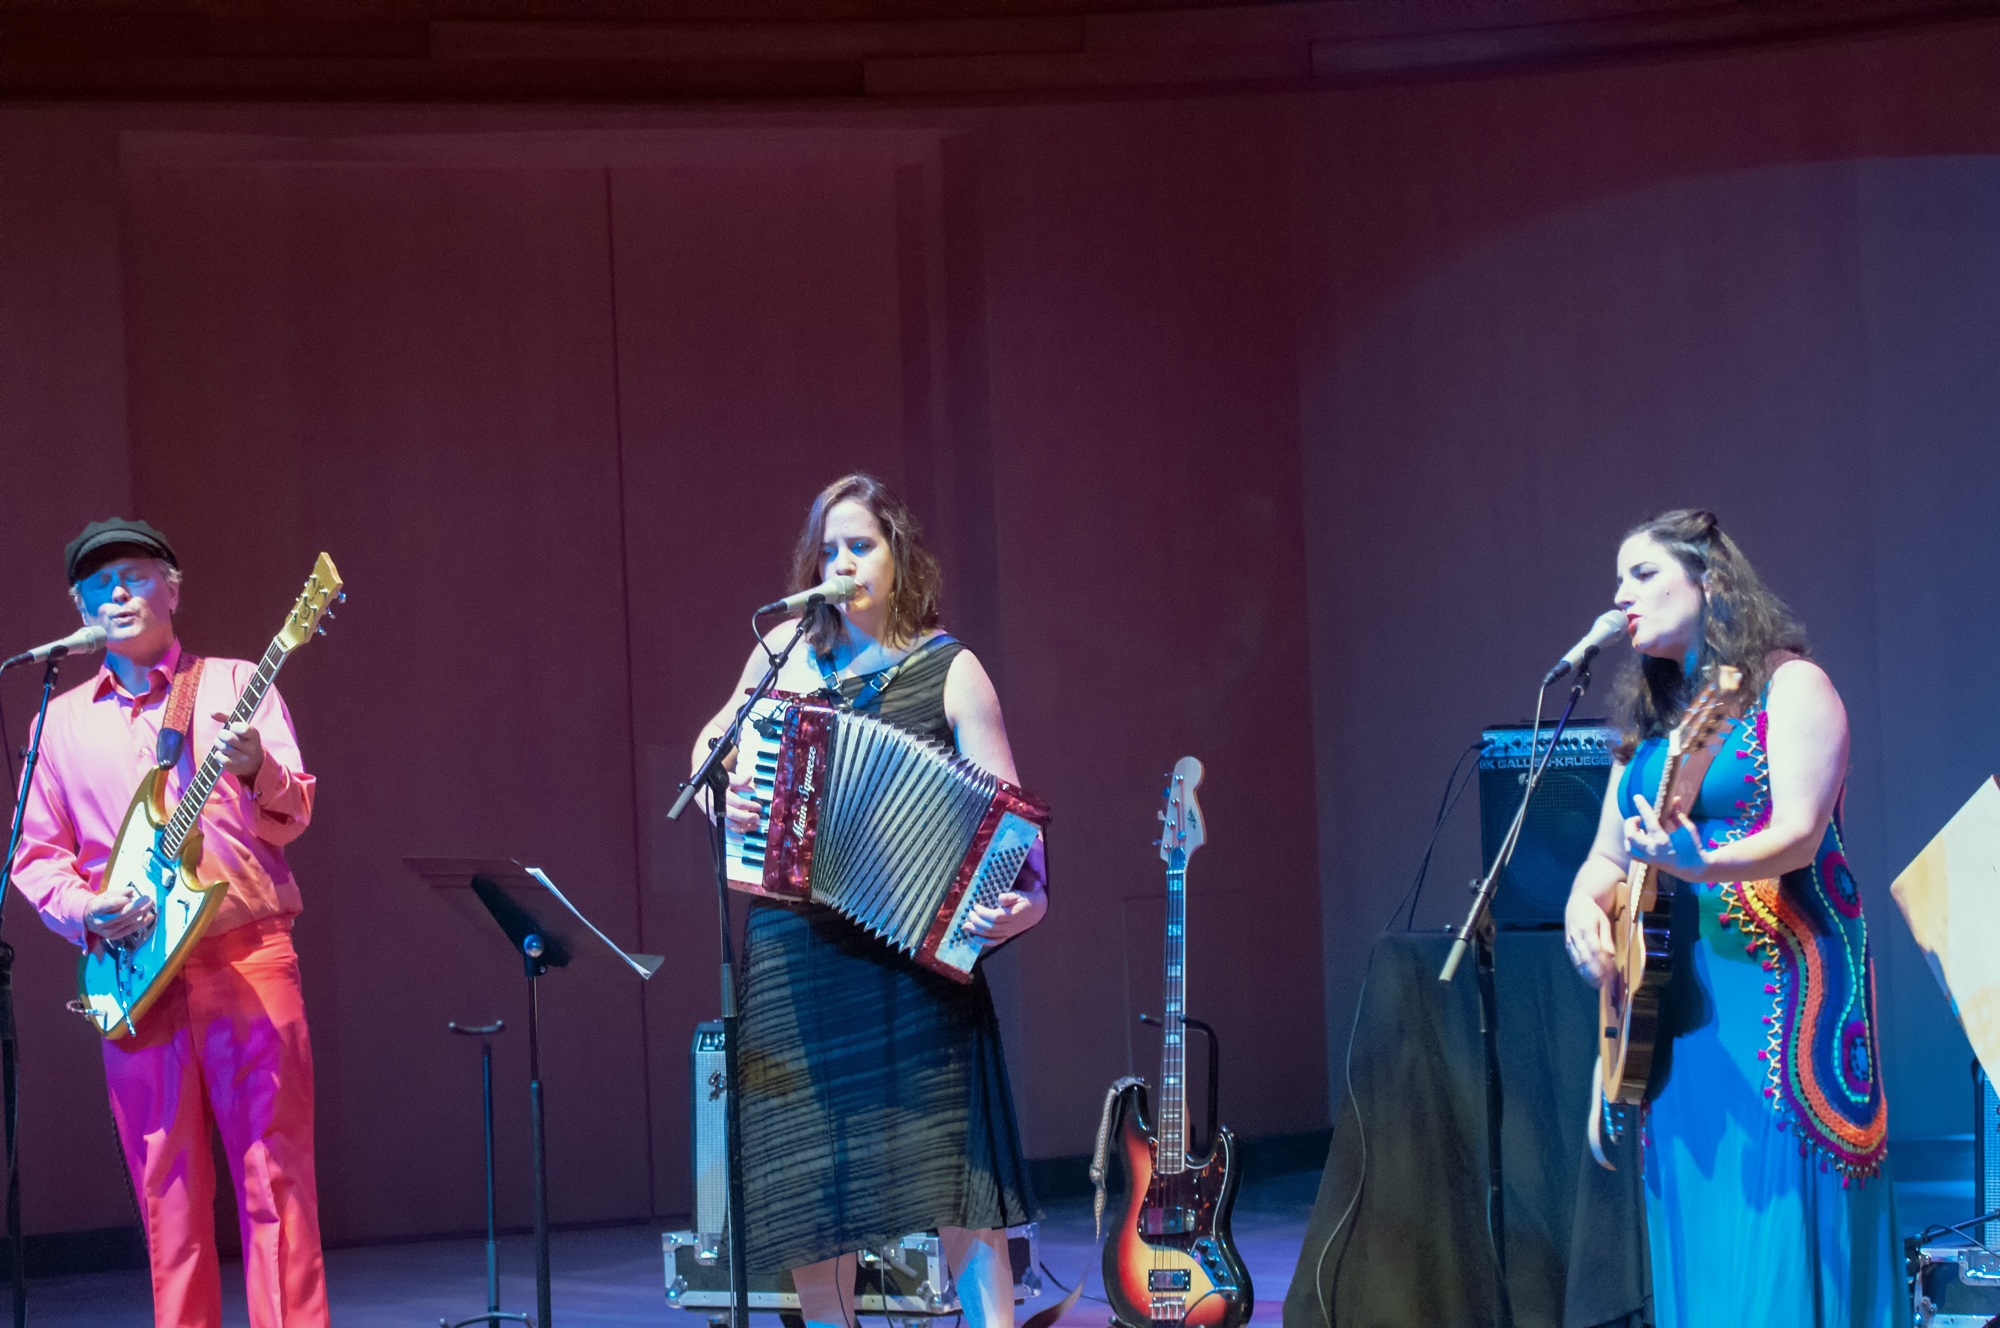 Erich Hubner, Eileen Willis and Ani Cordero at the Mim Global Music Festival